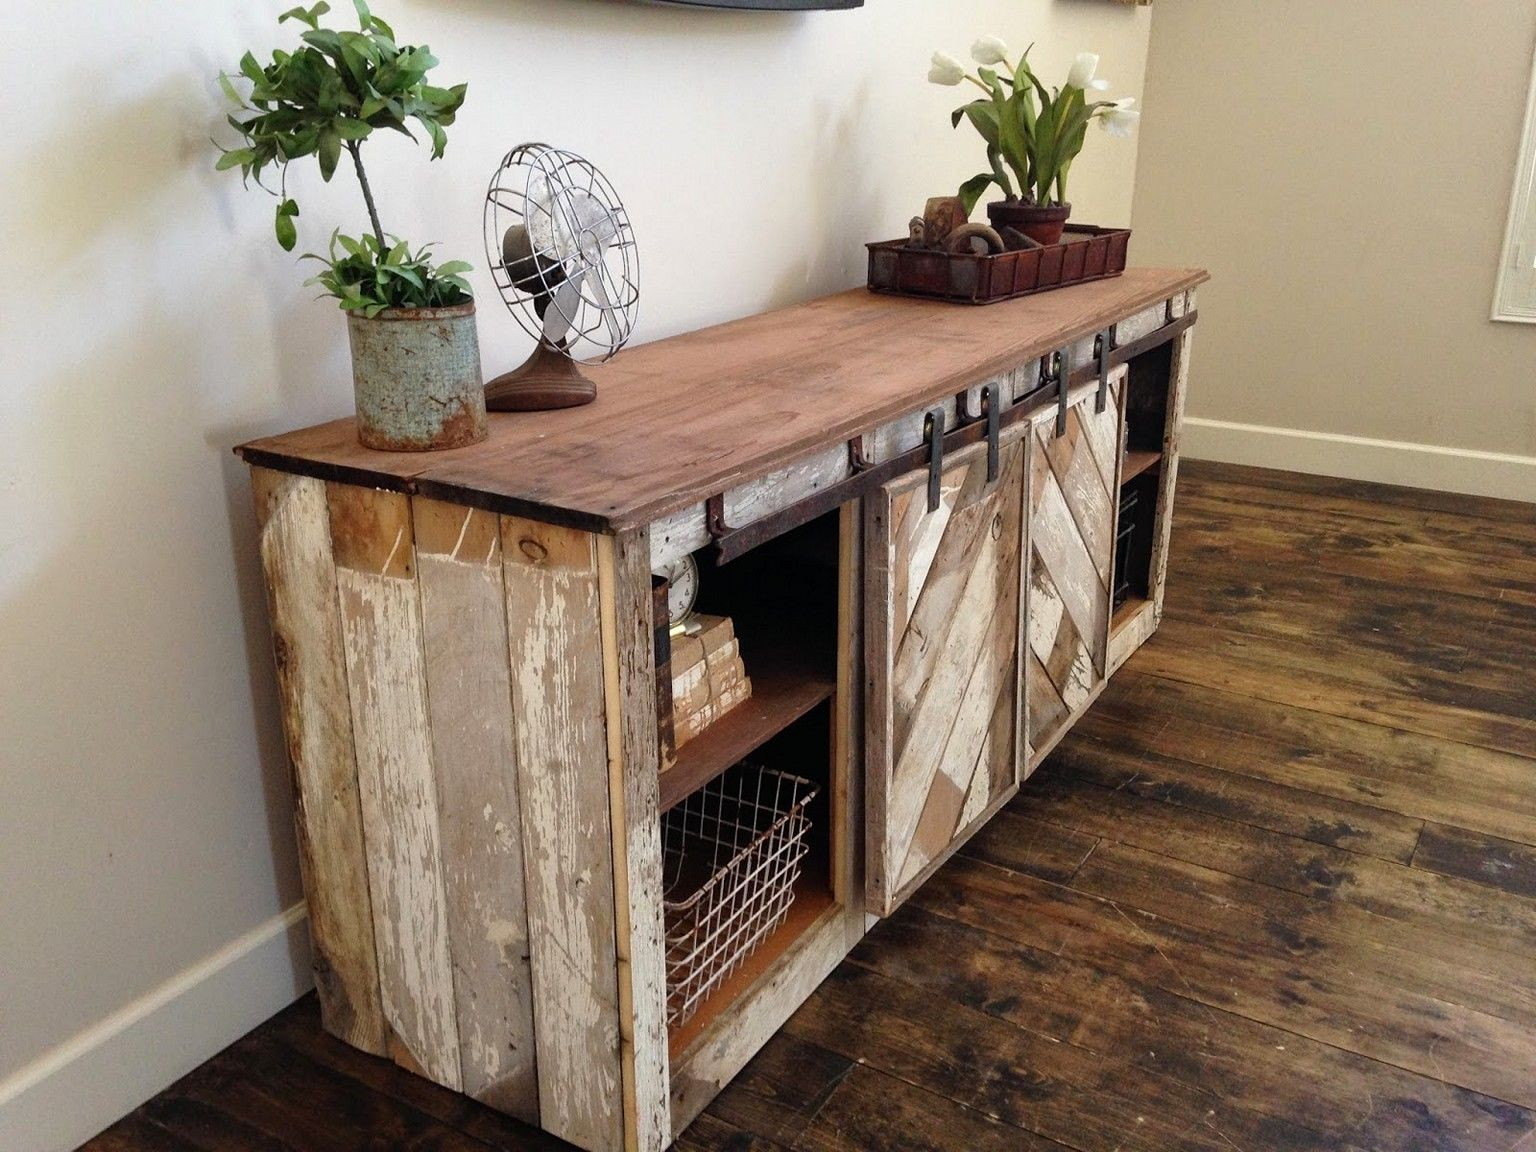 diy sliding door - Google Search ~ a console with sliding barn ...